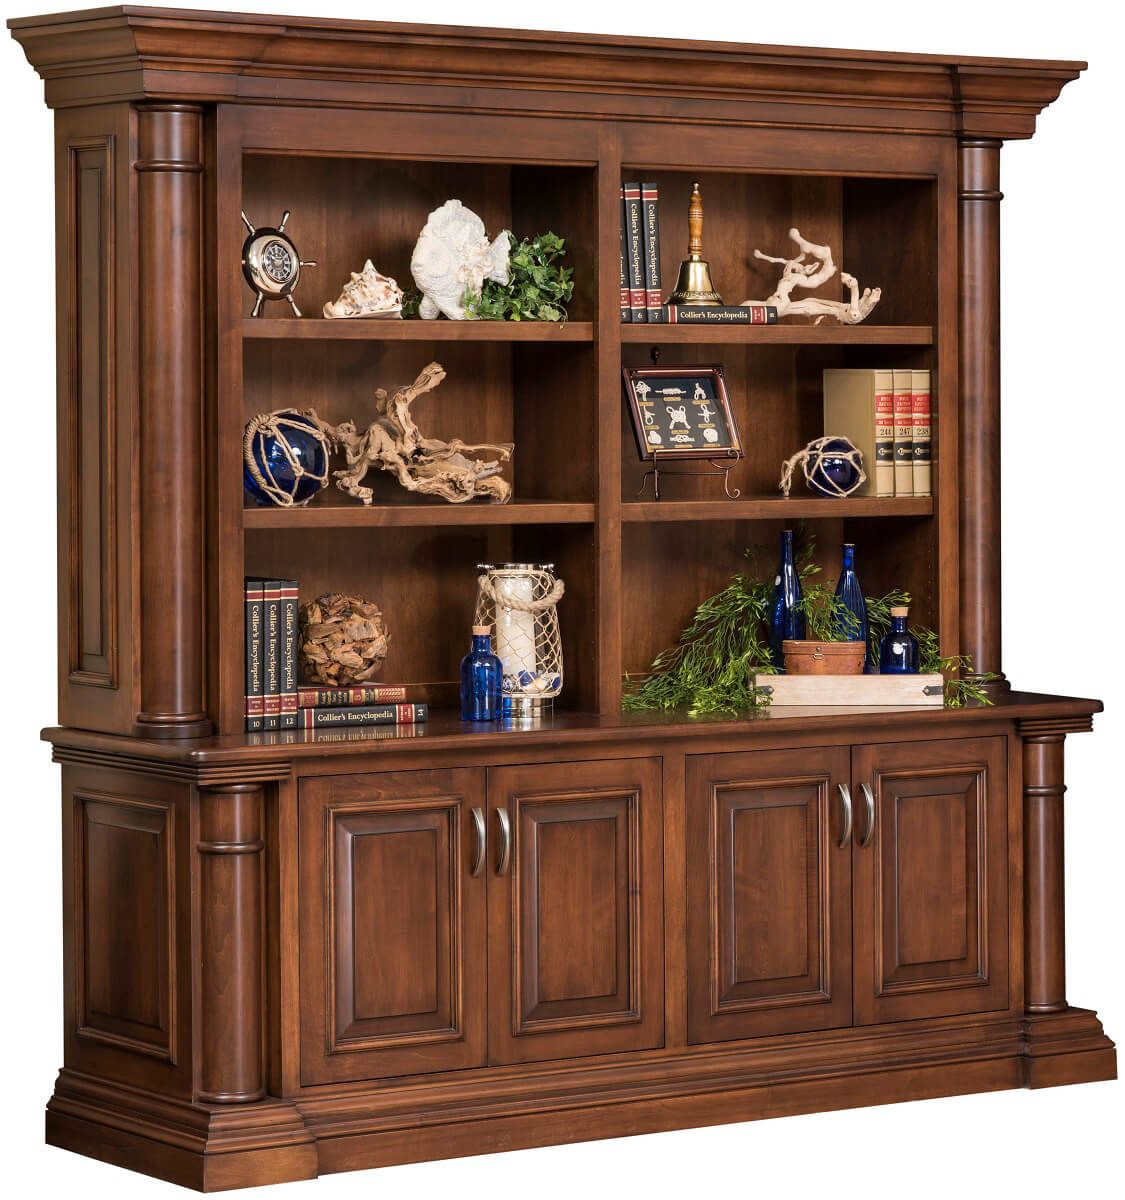 Newcastle Bookcase with Storage